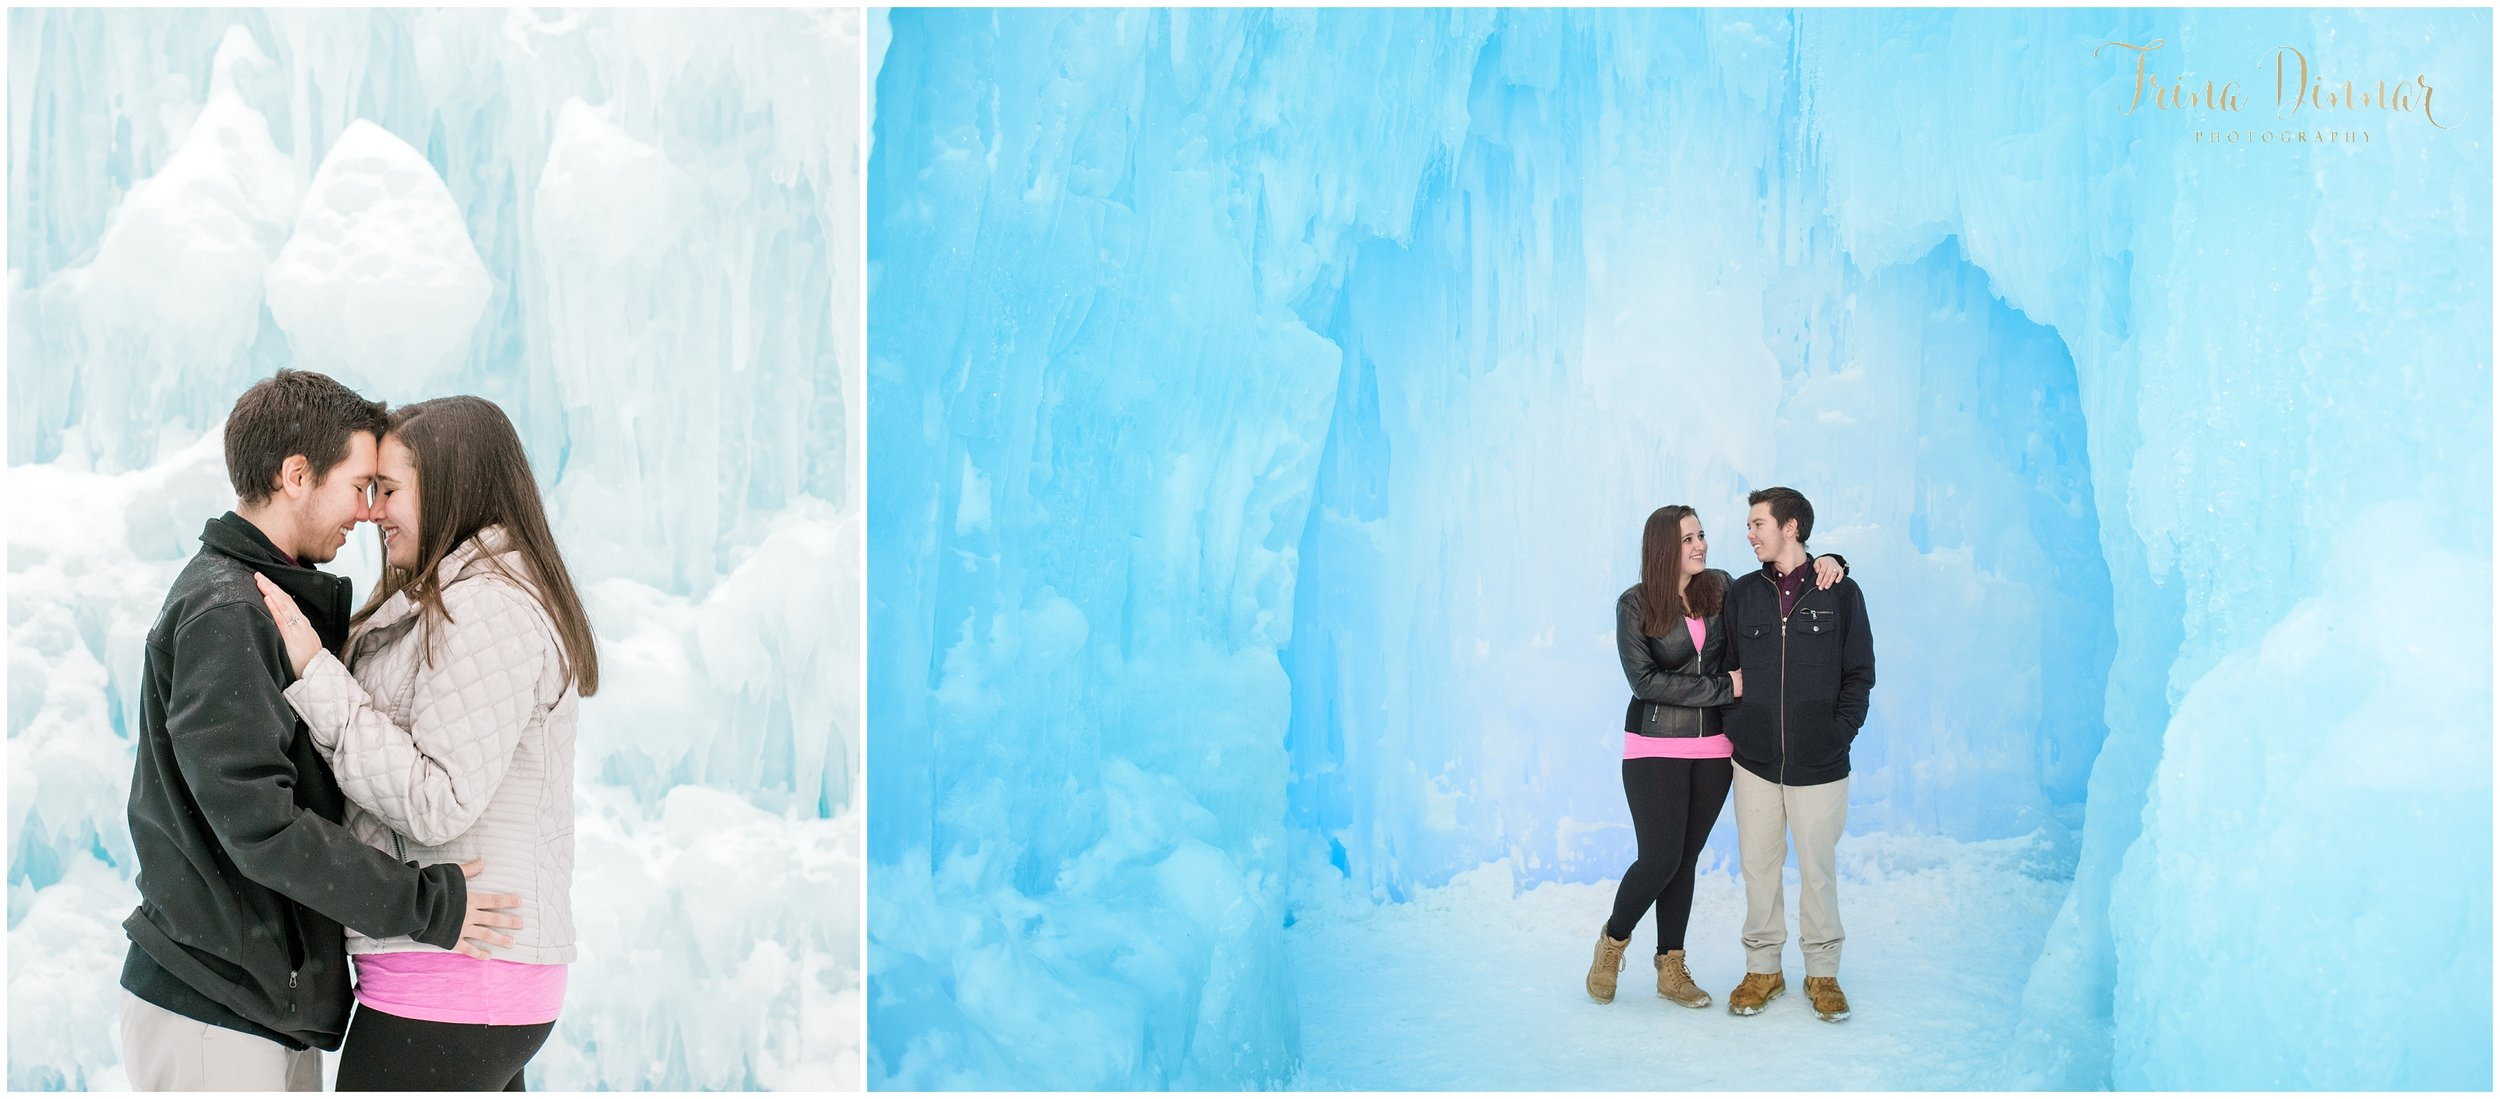 Kimberly and Eli's engagement session at the Ice Castles in Lincoln, NH